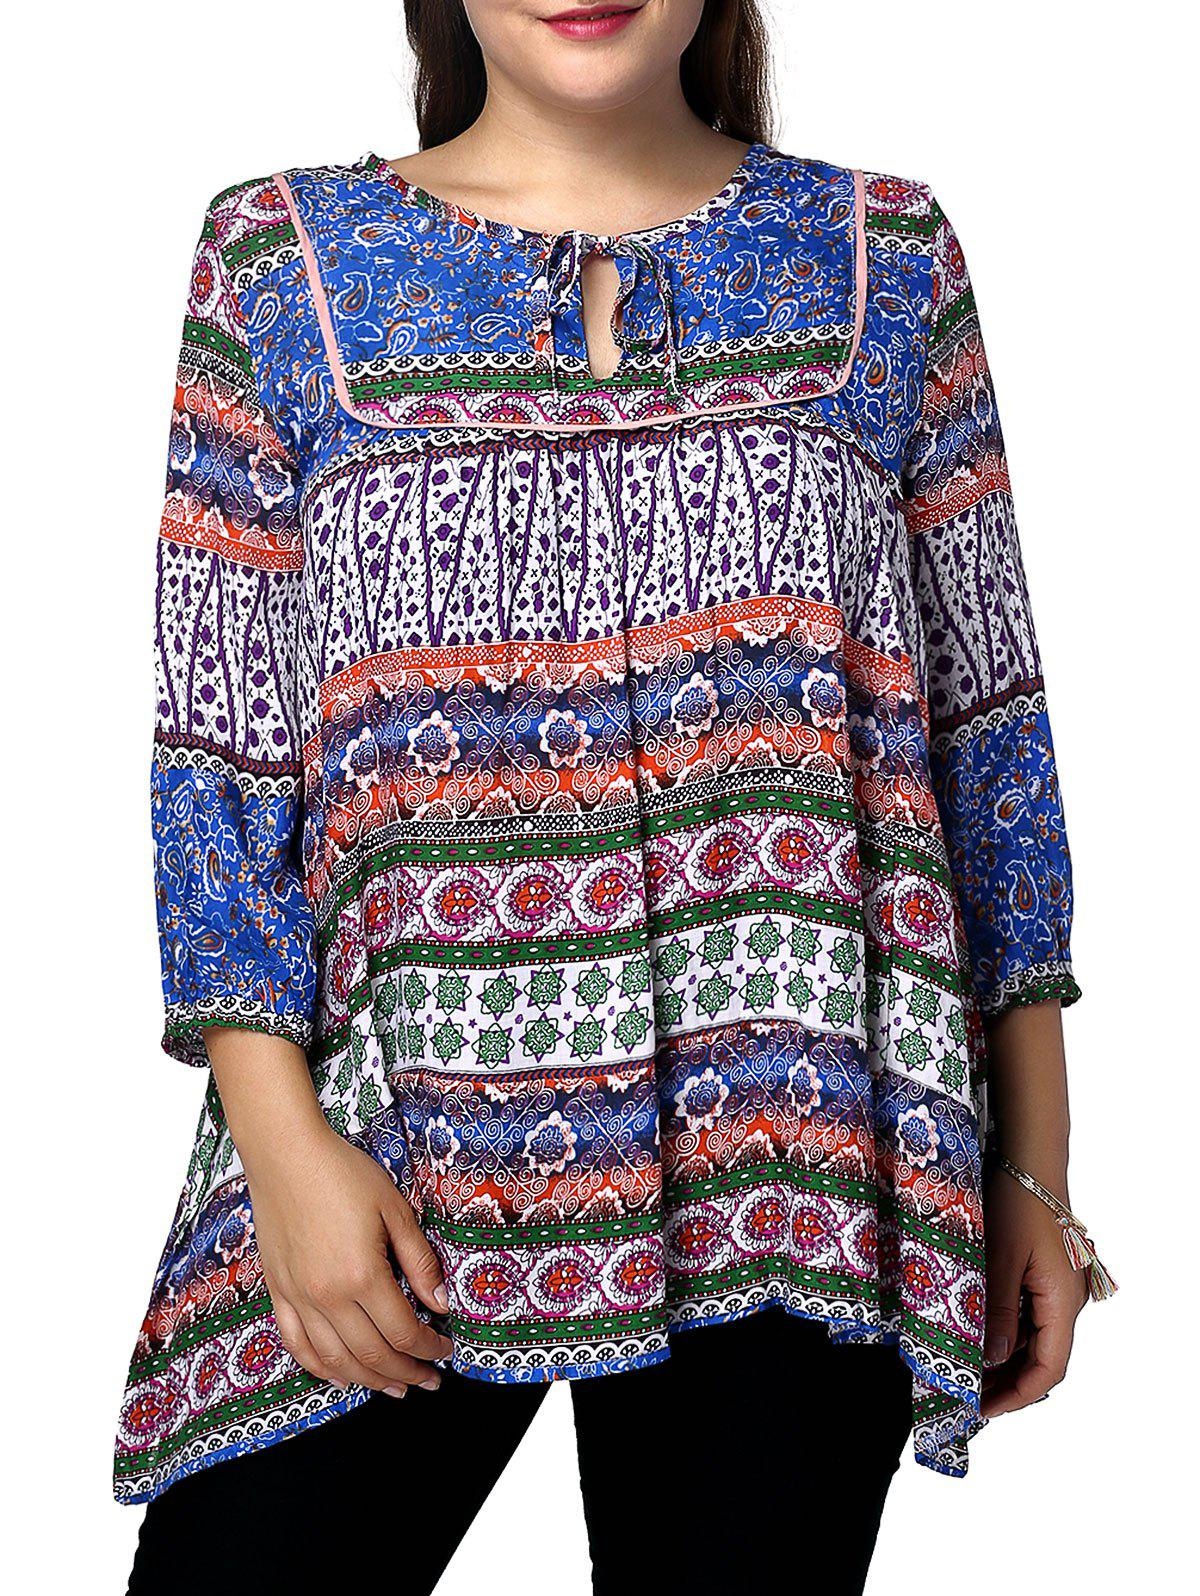 Ethnic Plus Size 3/4 Sleeve Keyhole Neck Abstract Pattern Women's Blouse - BLUE S